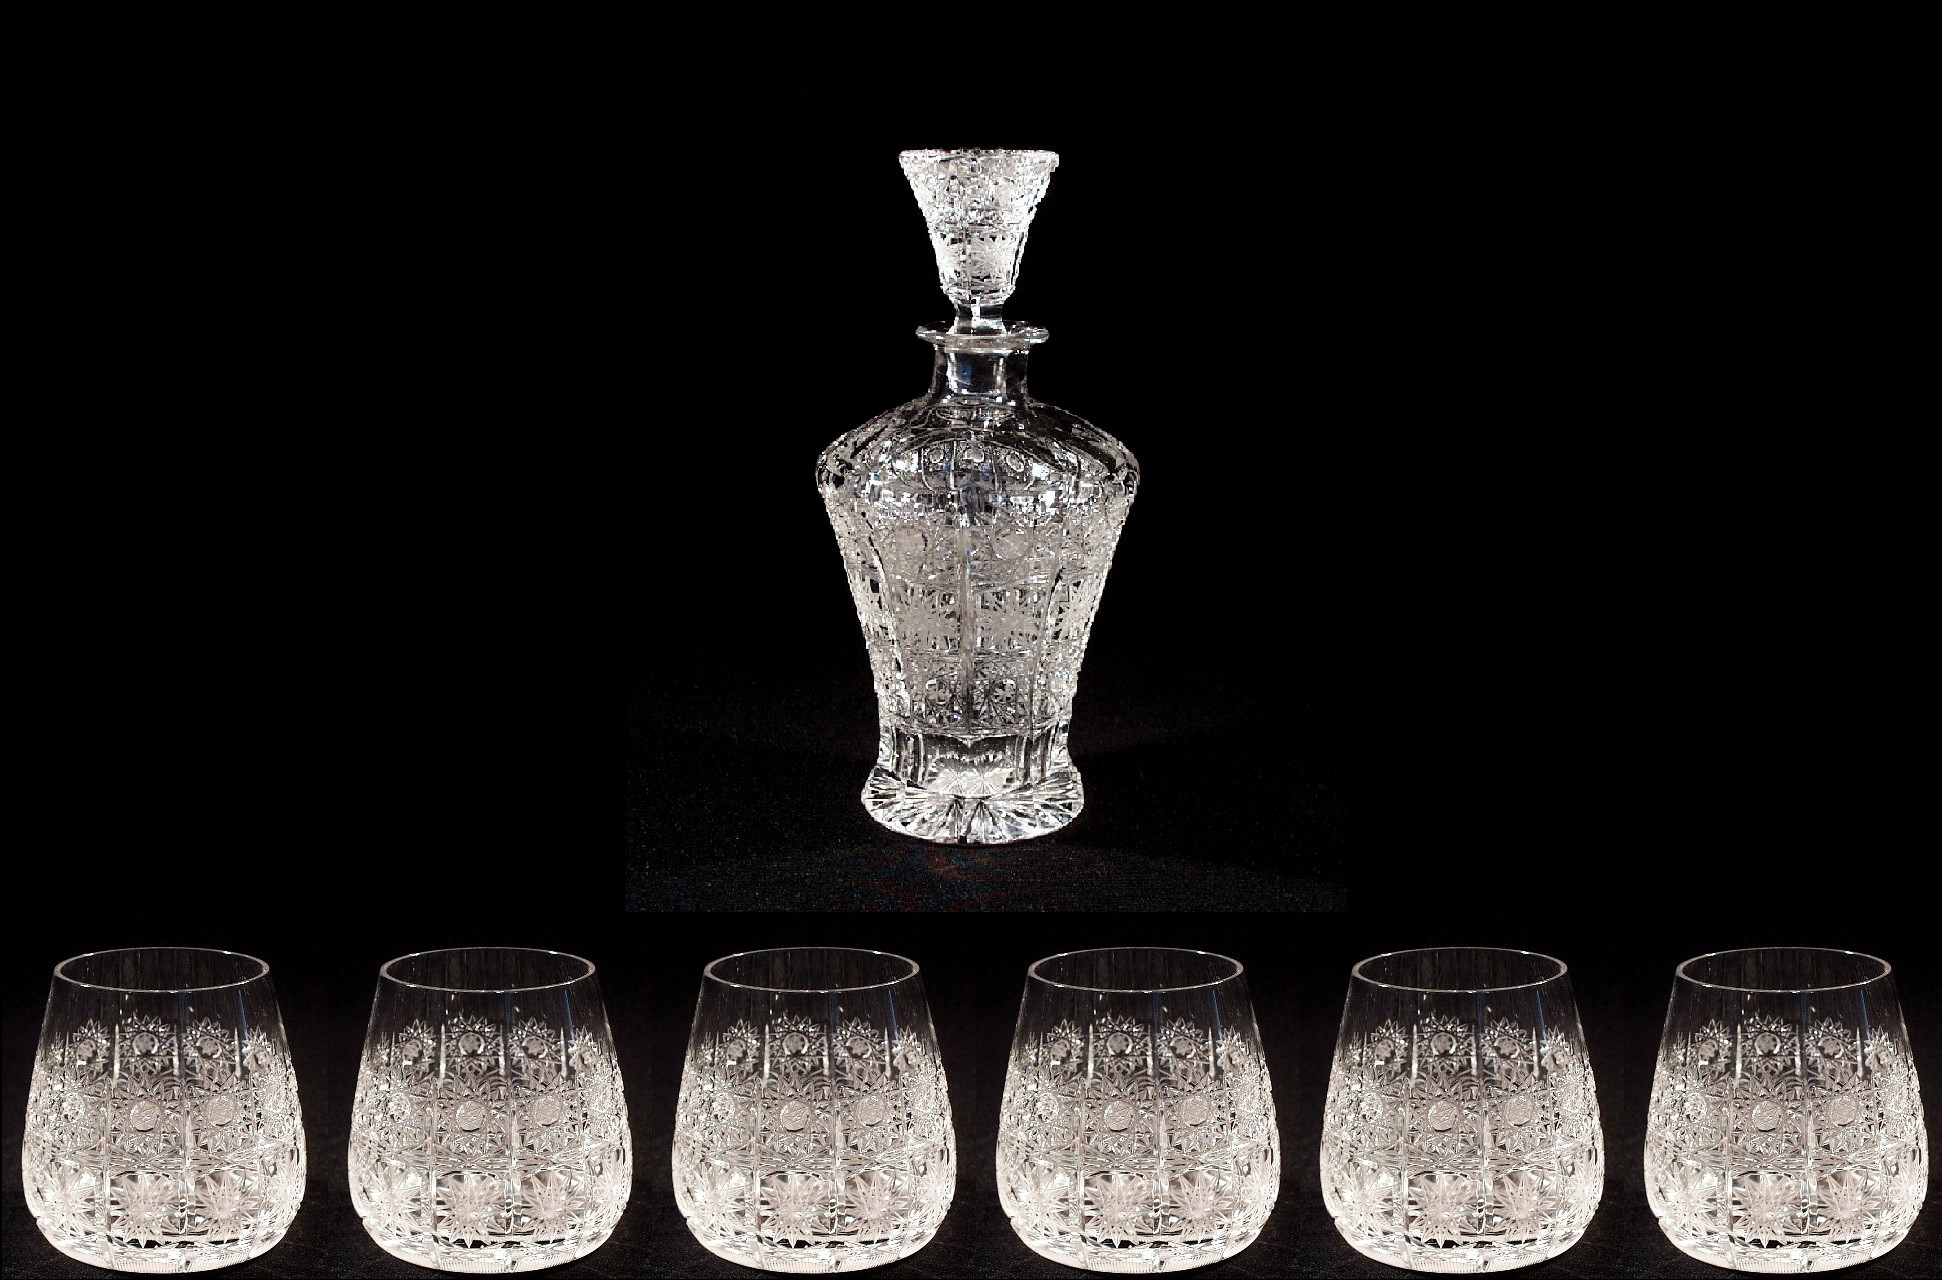 bohemian cut crystal vase of crystal and design drinking sets glass porcelan sklo lustry with crystal cut service 57001 7 pcs